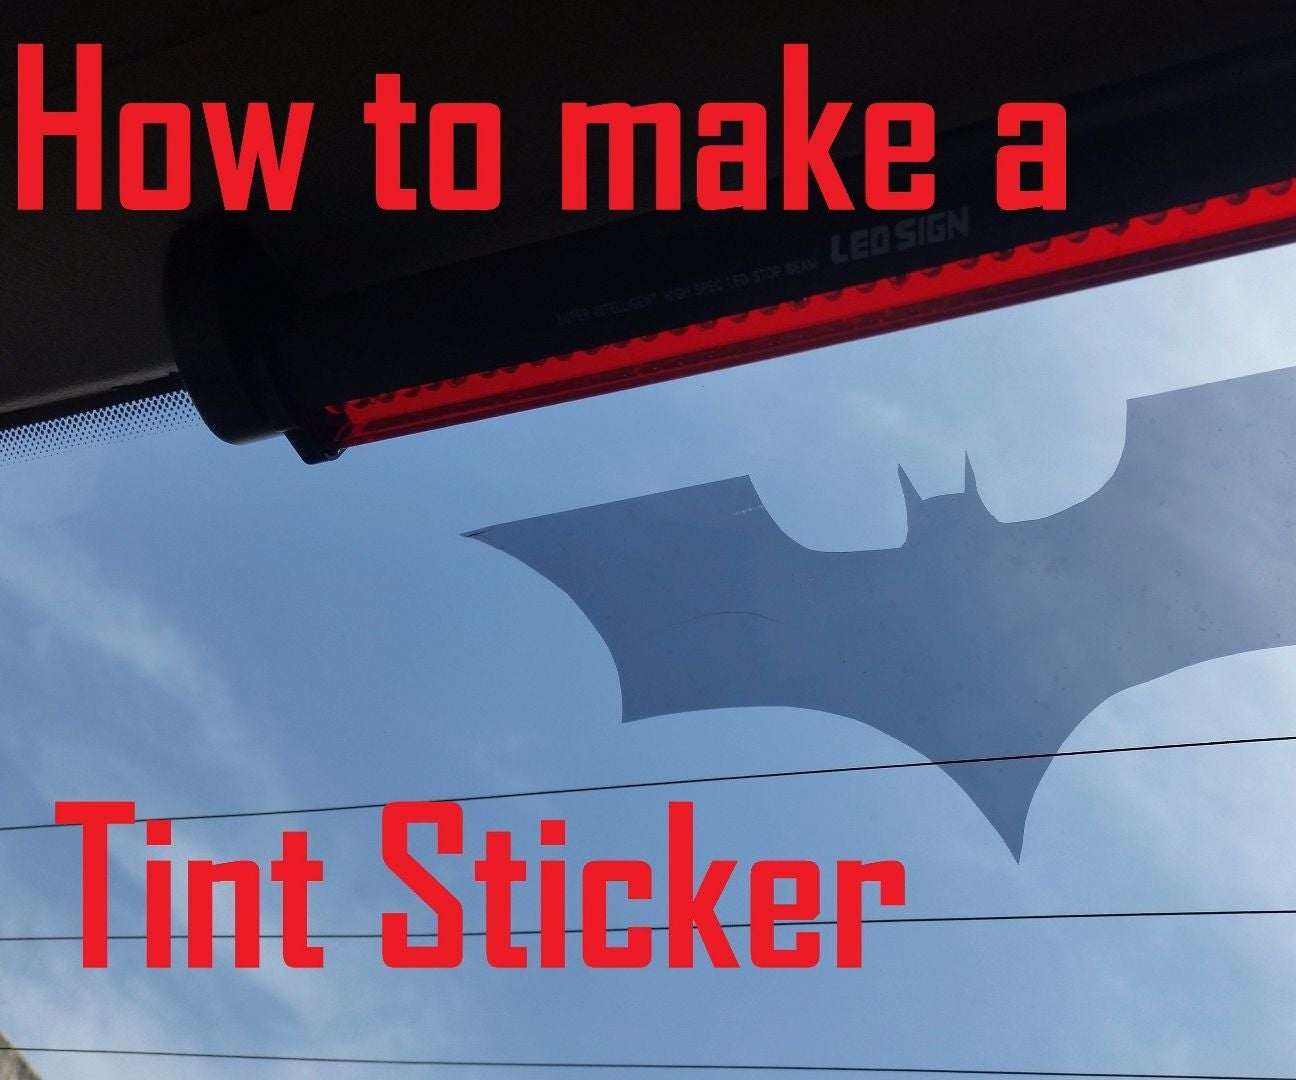 How to make car windows tint stickers 5 steps